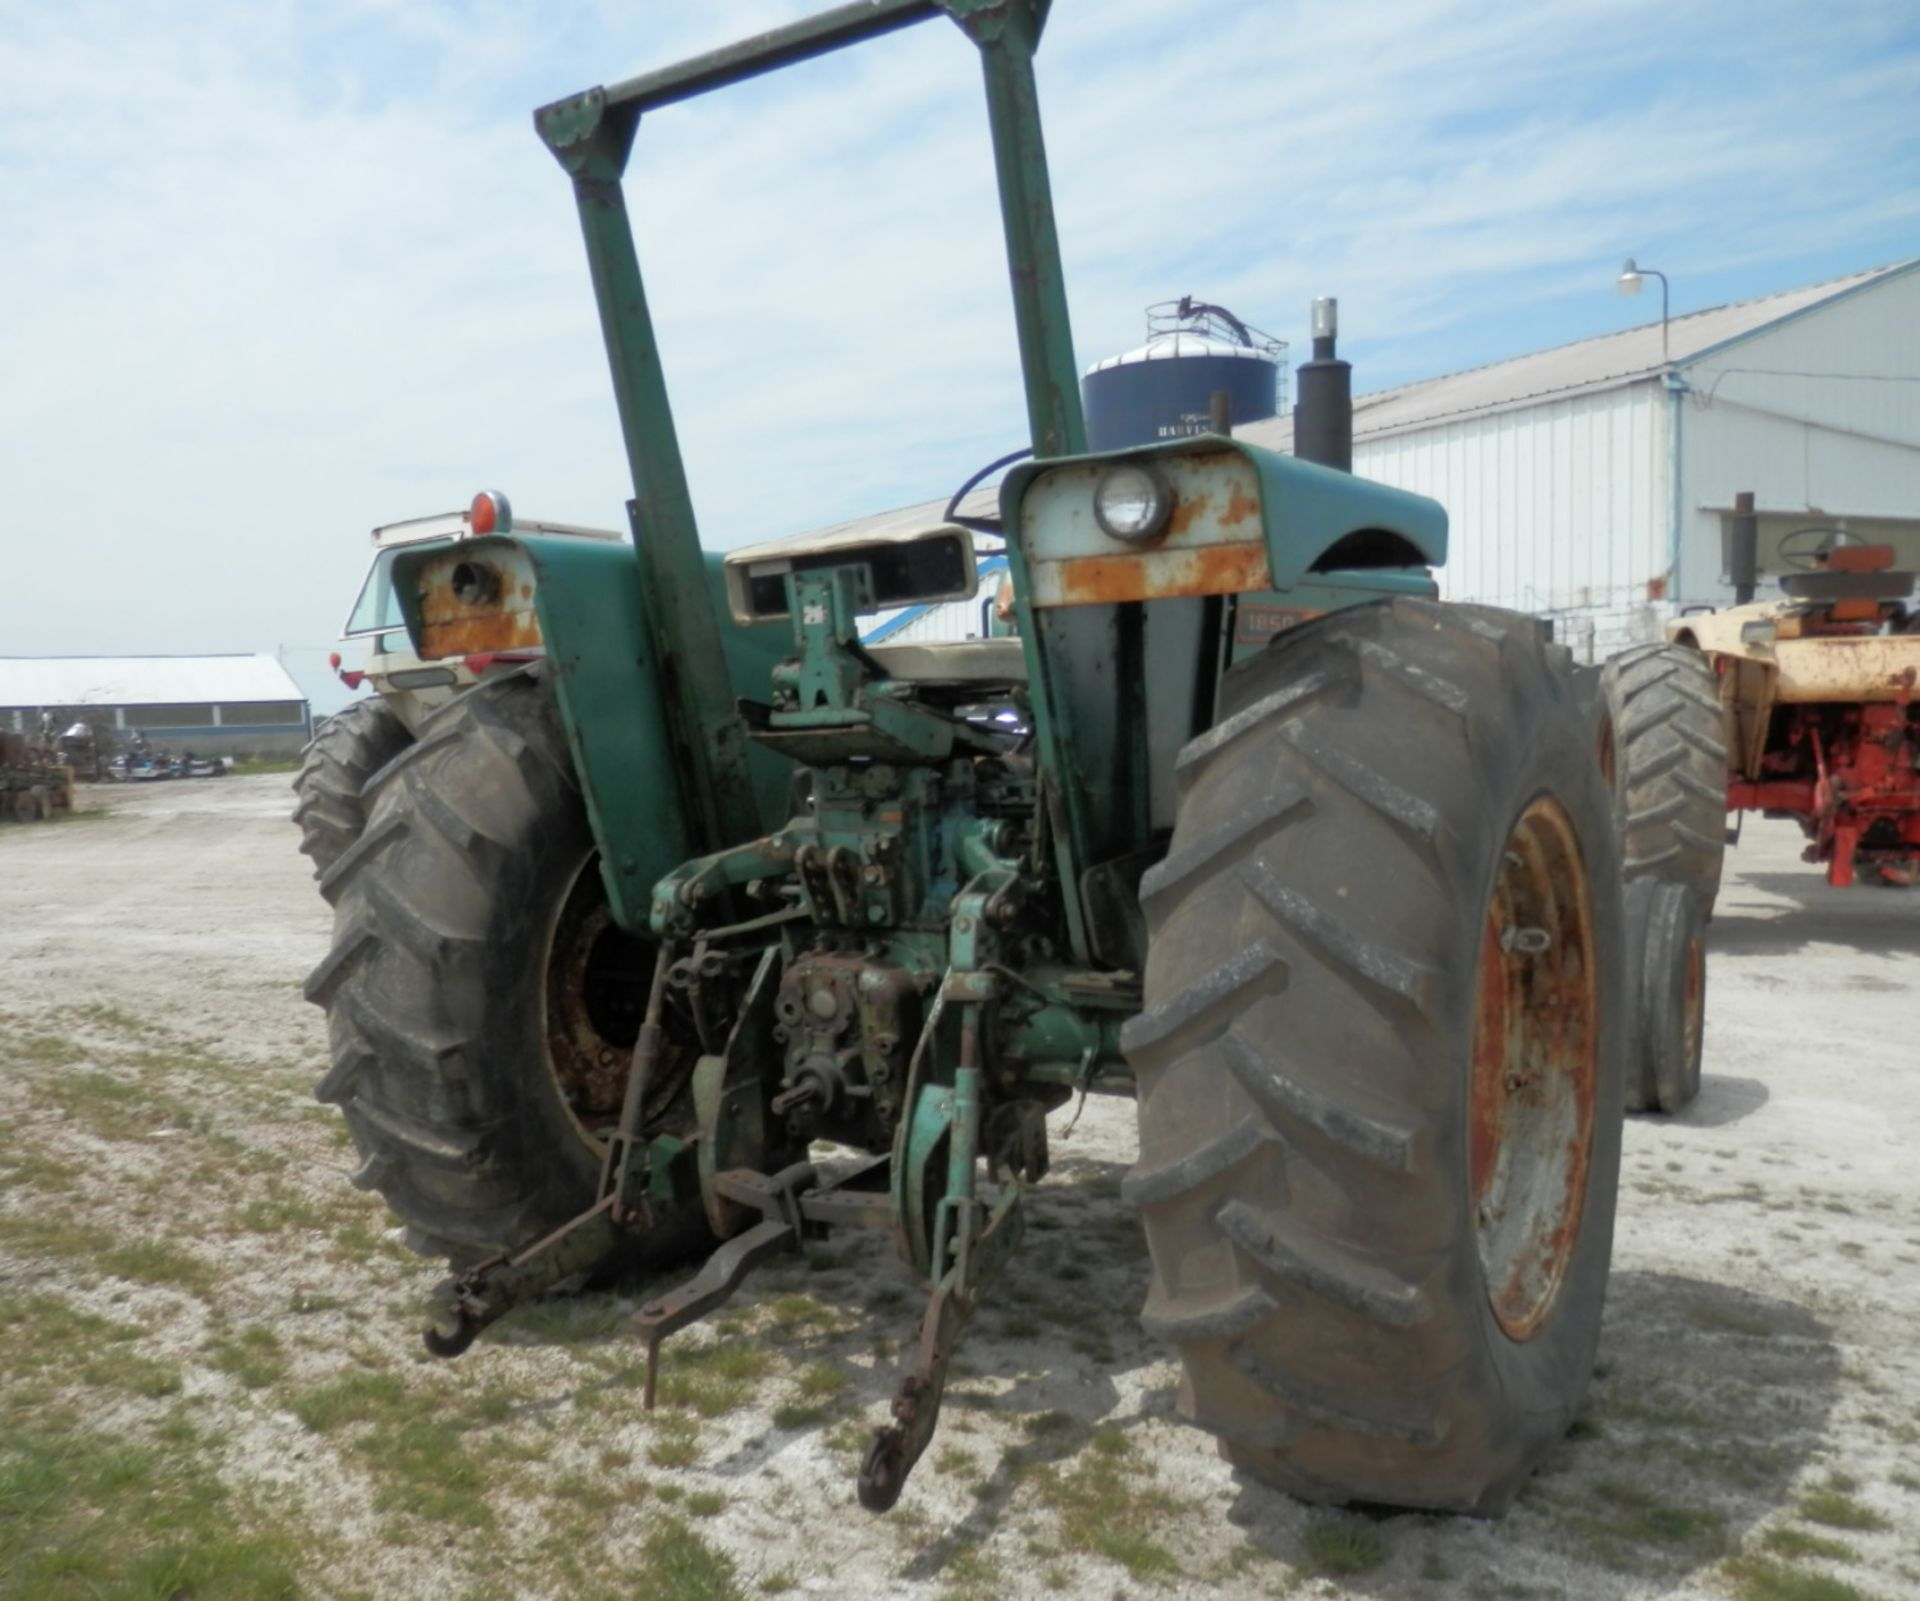 OLIVER 1850 TRACTOR - Image 2 of 5